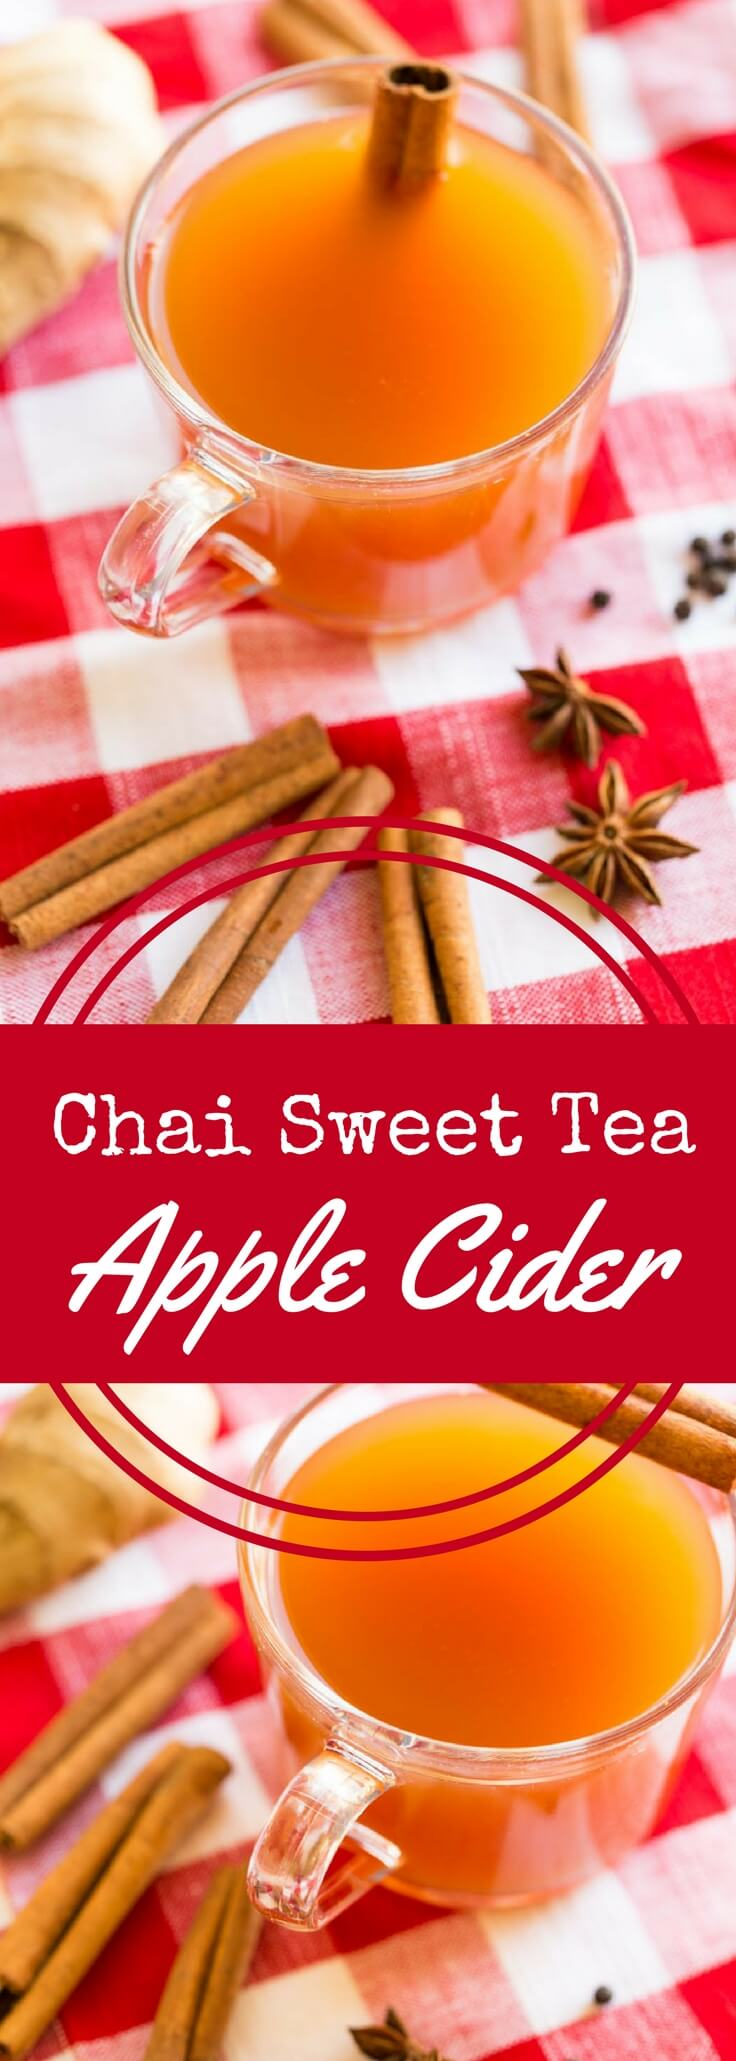 A blend of apple cider, tea, and chai spices, this delicious Chai Spiced Sweet Tea Hot Apple Cider recipe is perfect for fall, winter, and the holidays.